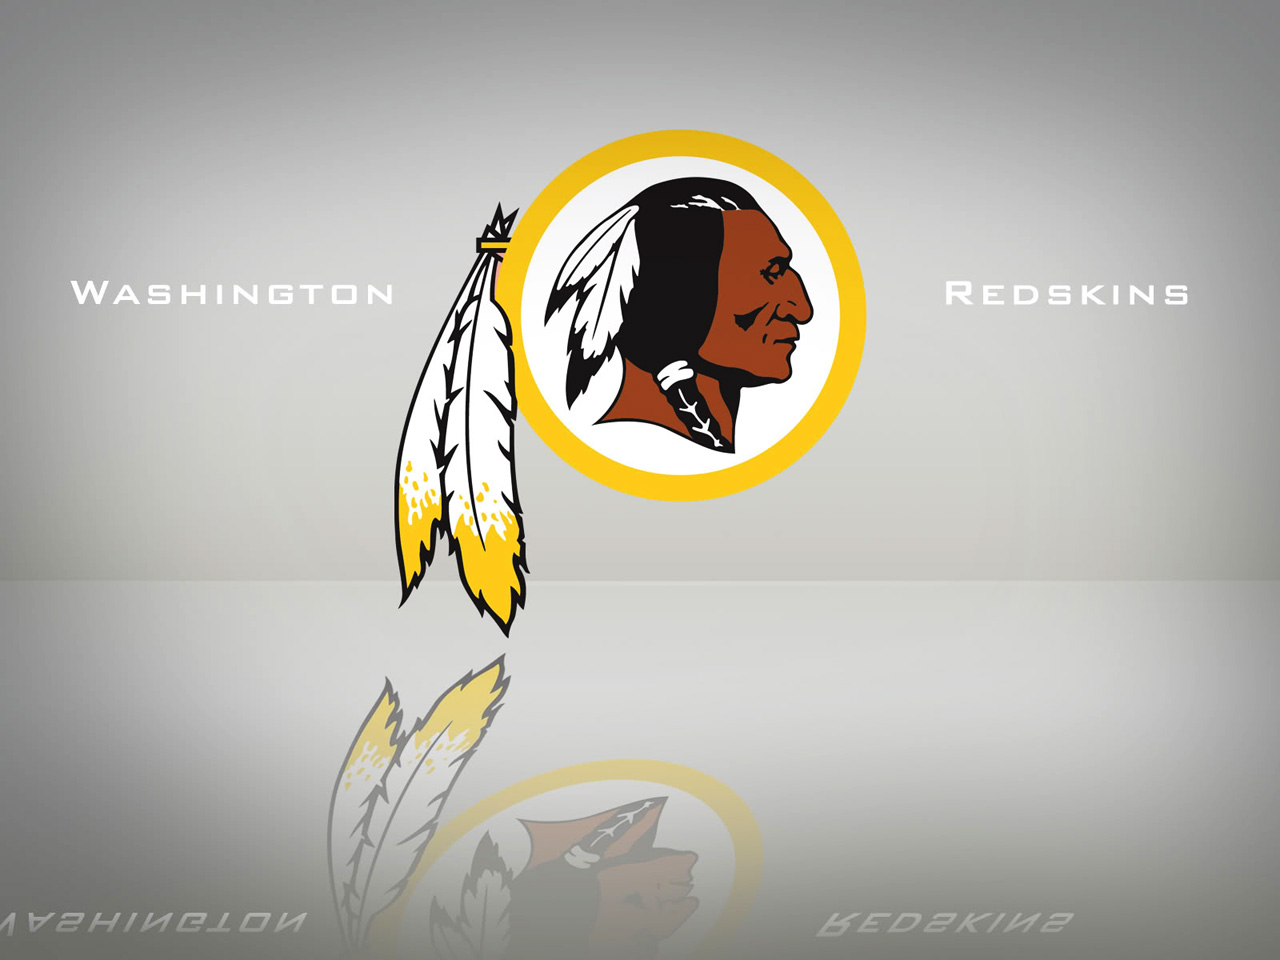 Download-free-redskins-for-your-mobile-phone-most-wallpaper-wpc9004411